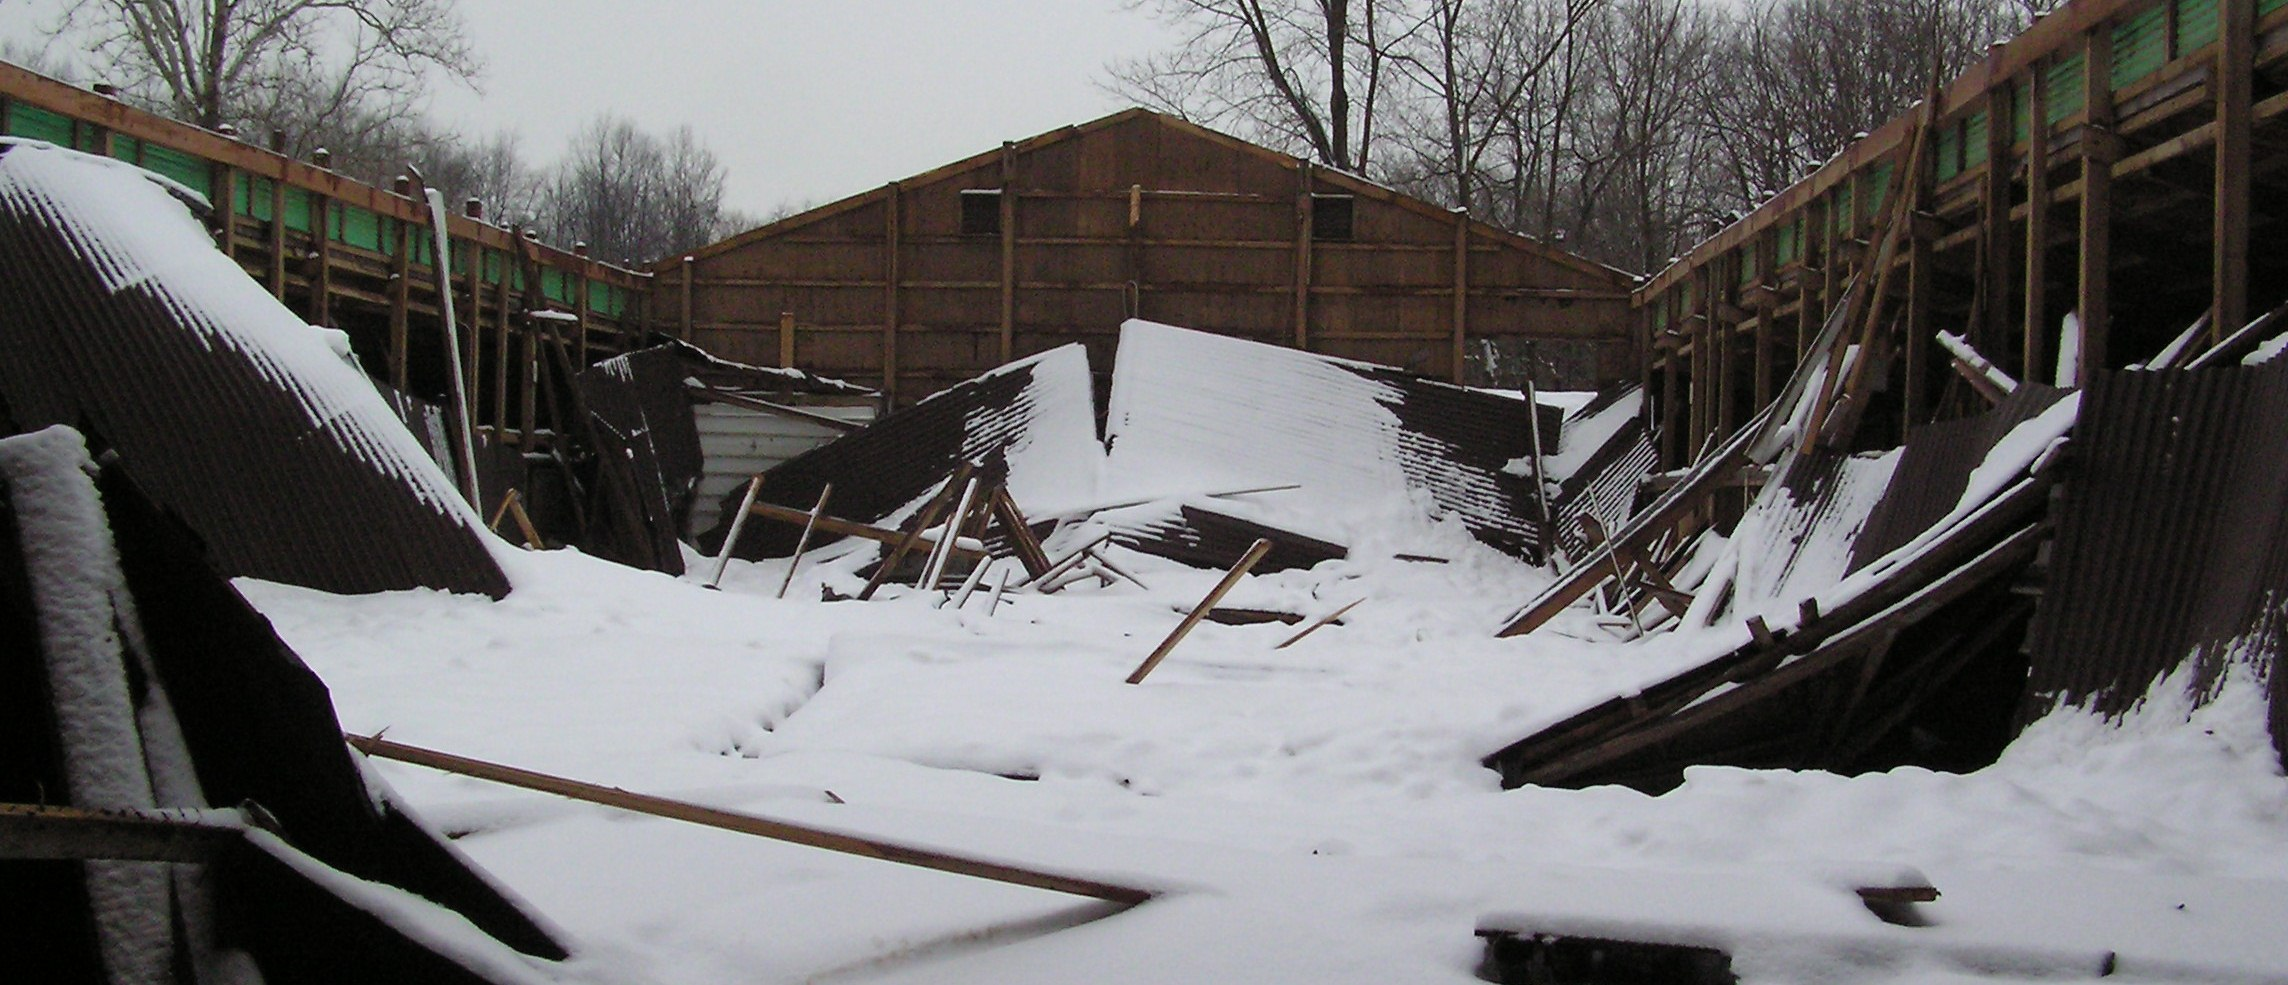 How much snow was on the roof when it collapsed? | Prugar Consulting ...